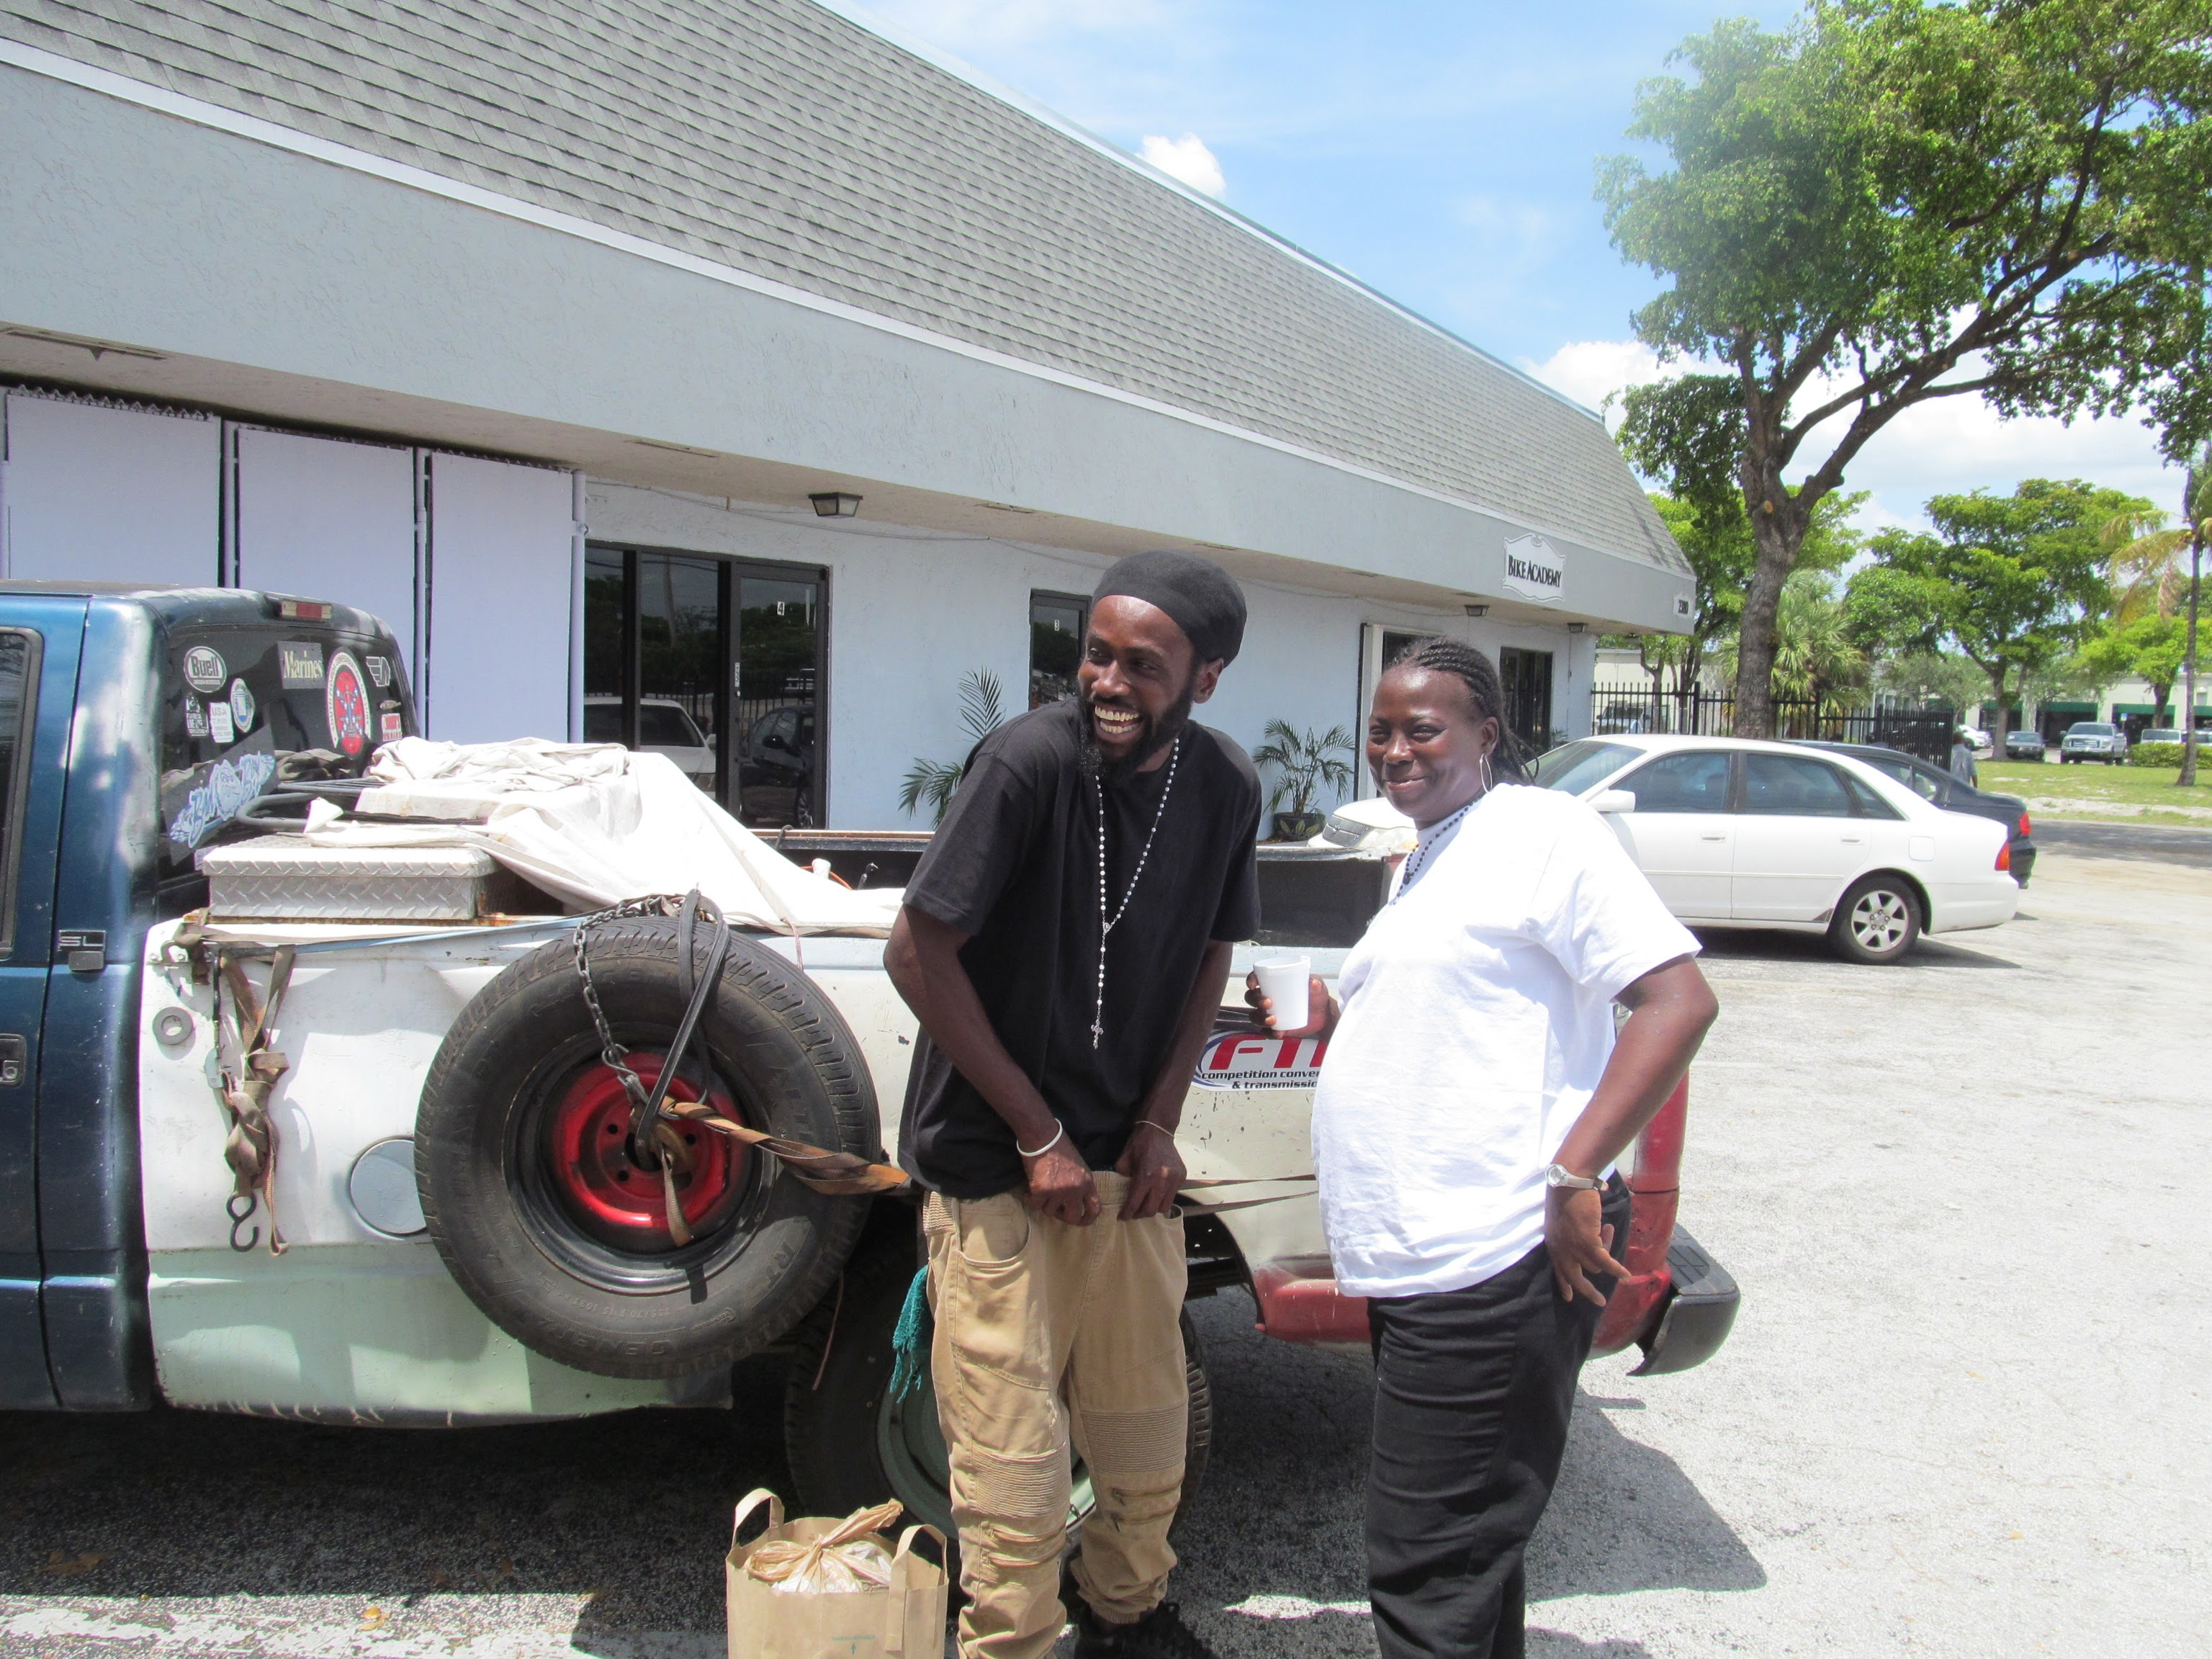 Homeless people are happy to take a picture outside Our Father's House Soup Kitchen.